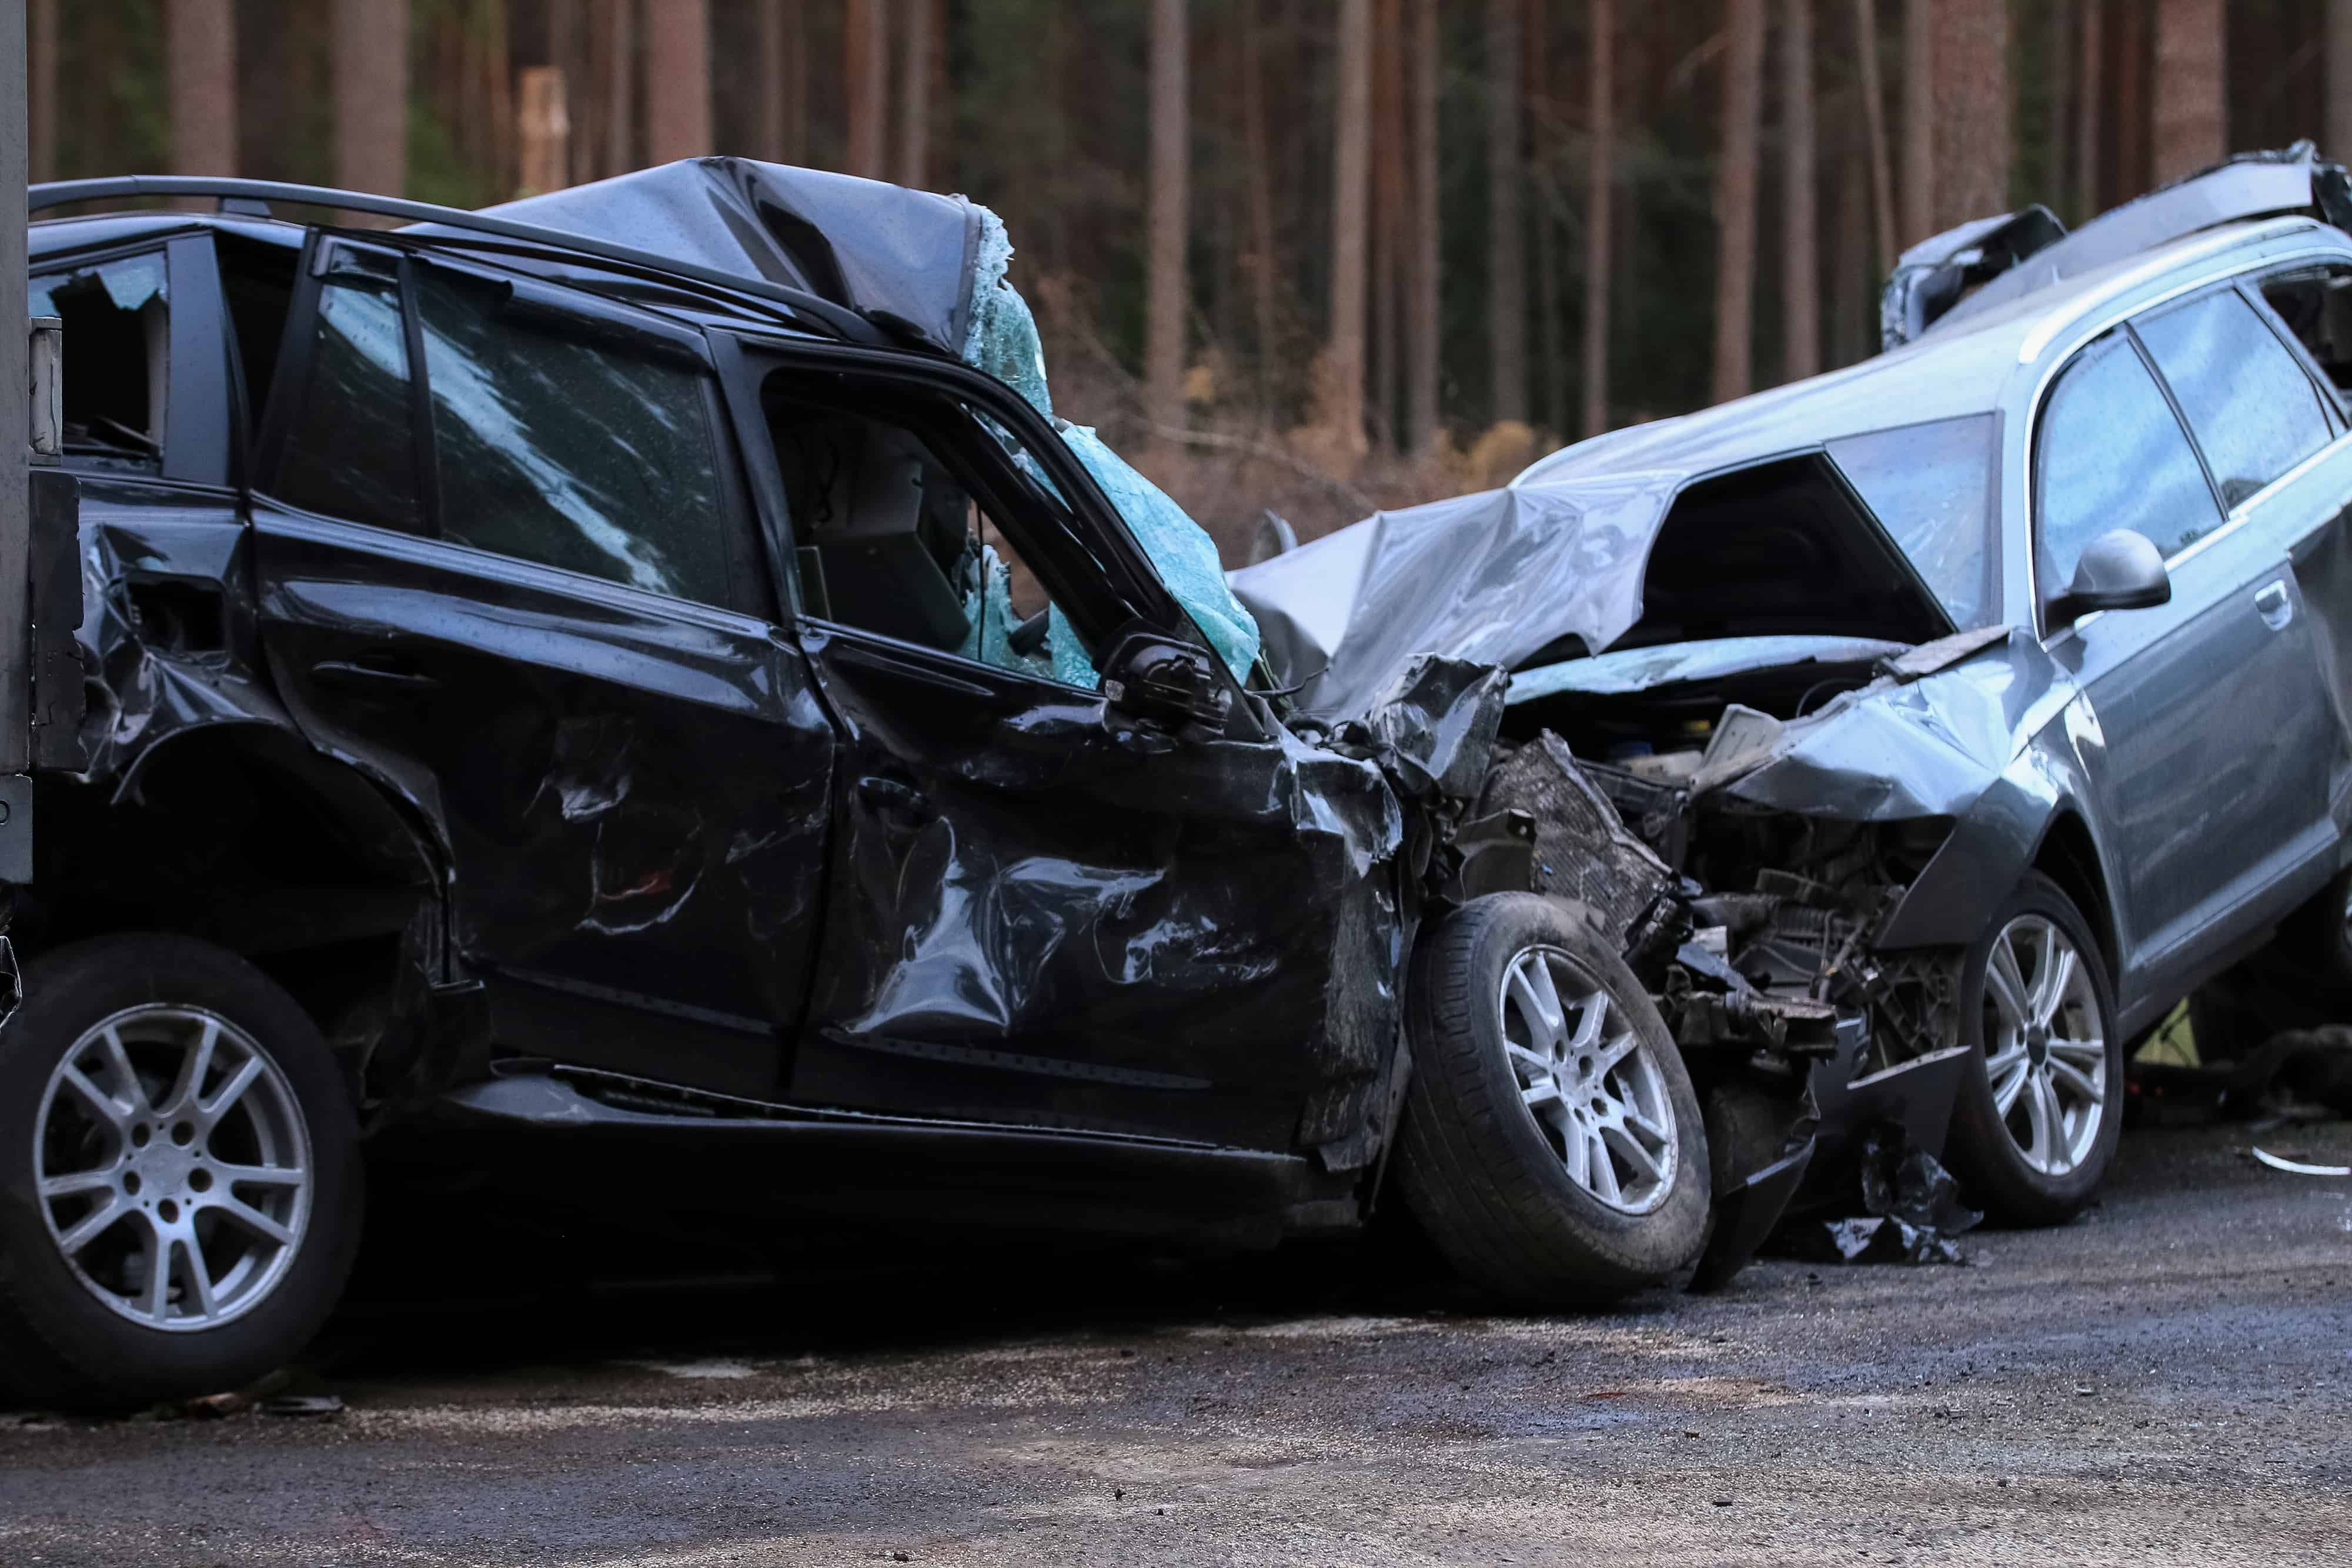 Collision near Lincoln Boulevard in Oroville Injures 1